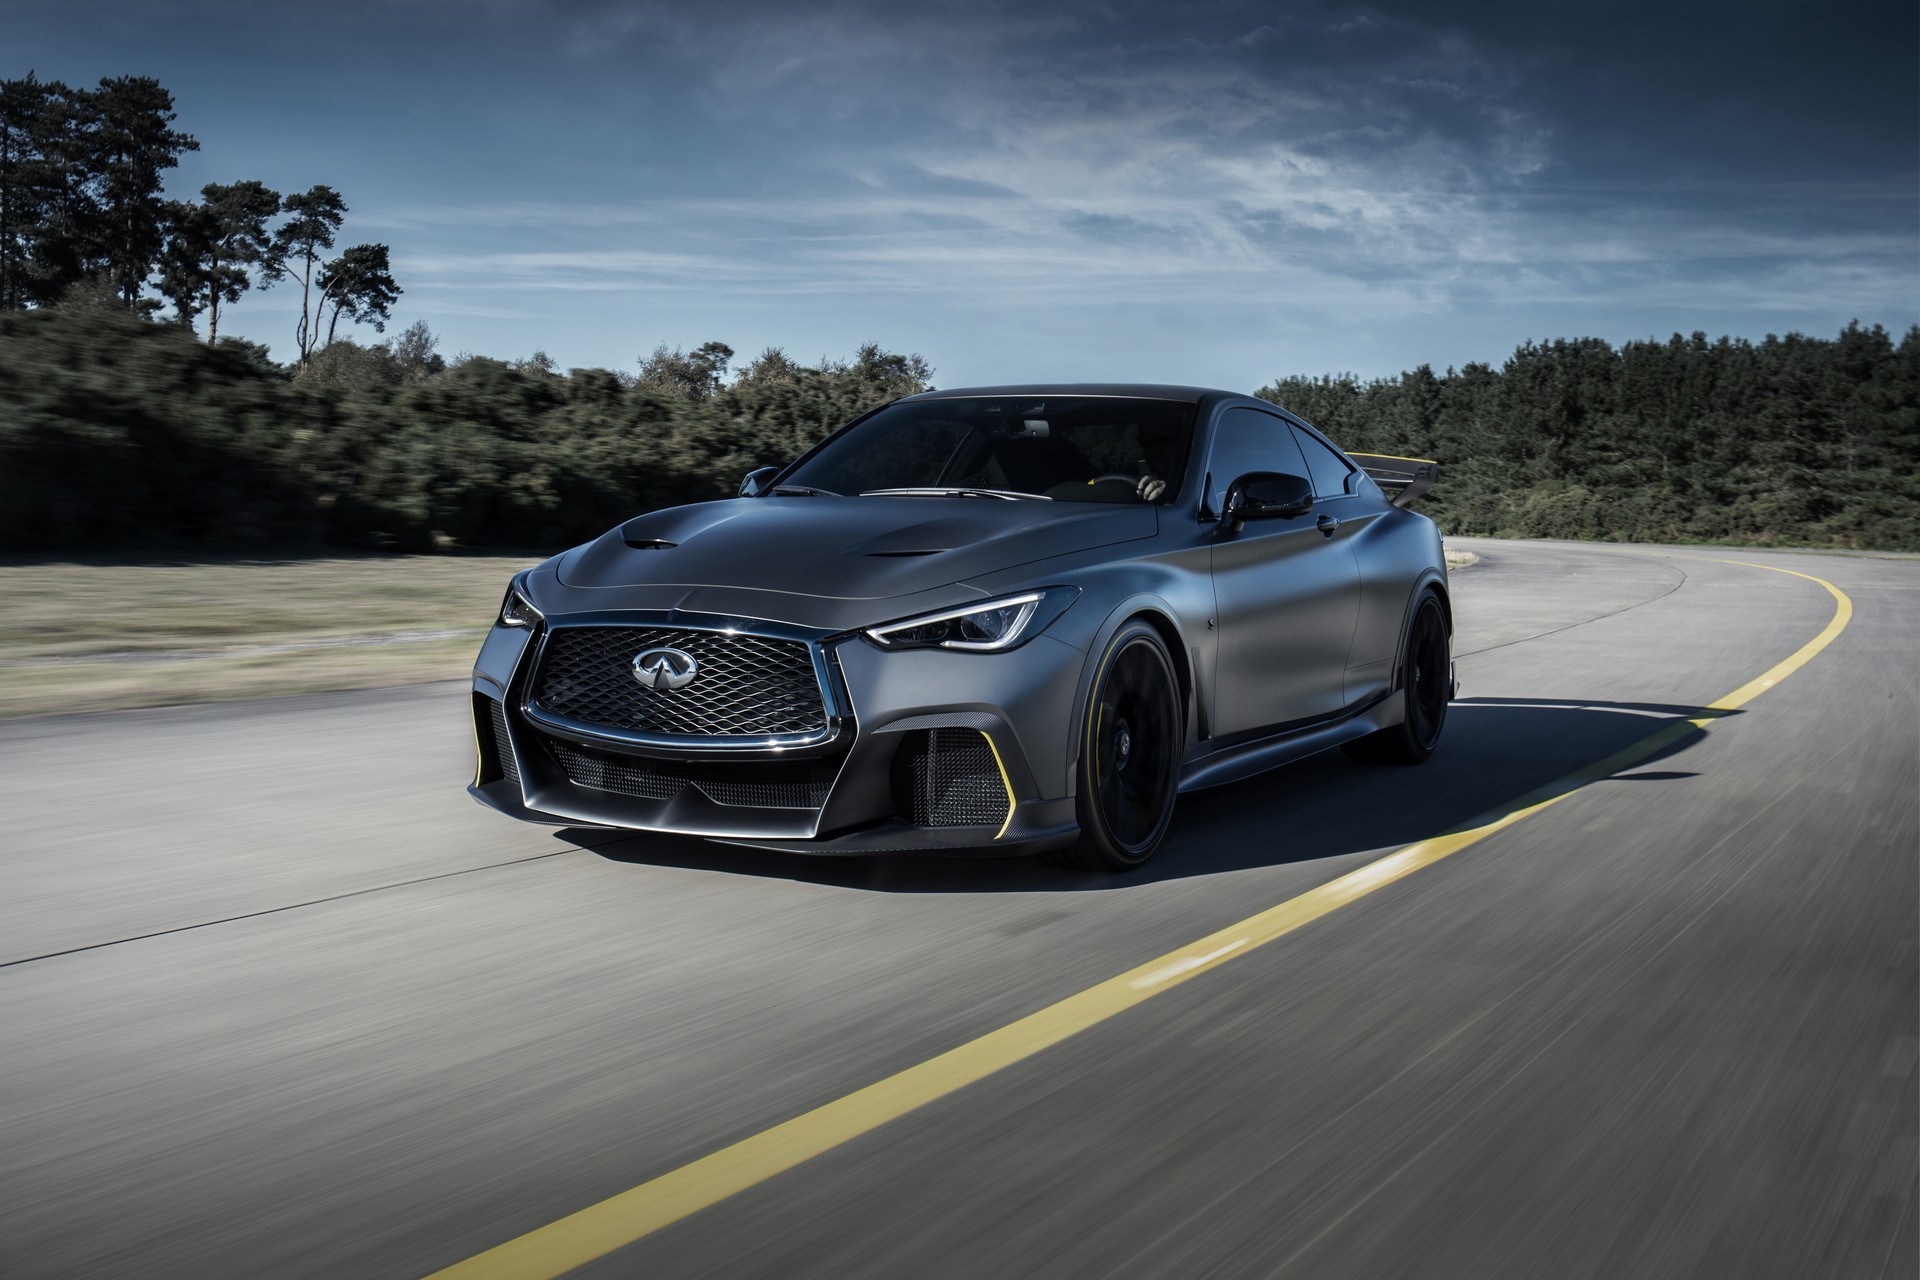 Infiniti Project Black S Prototype (25)